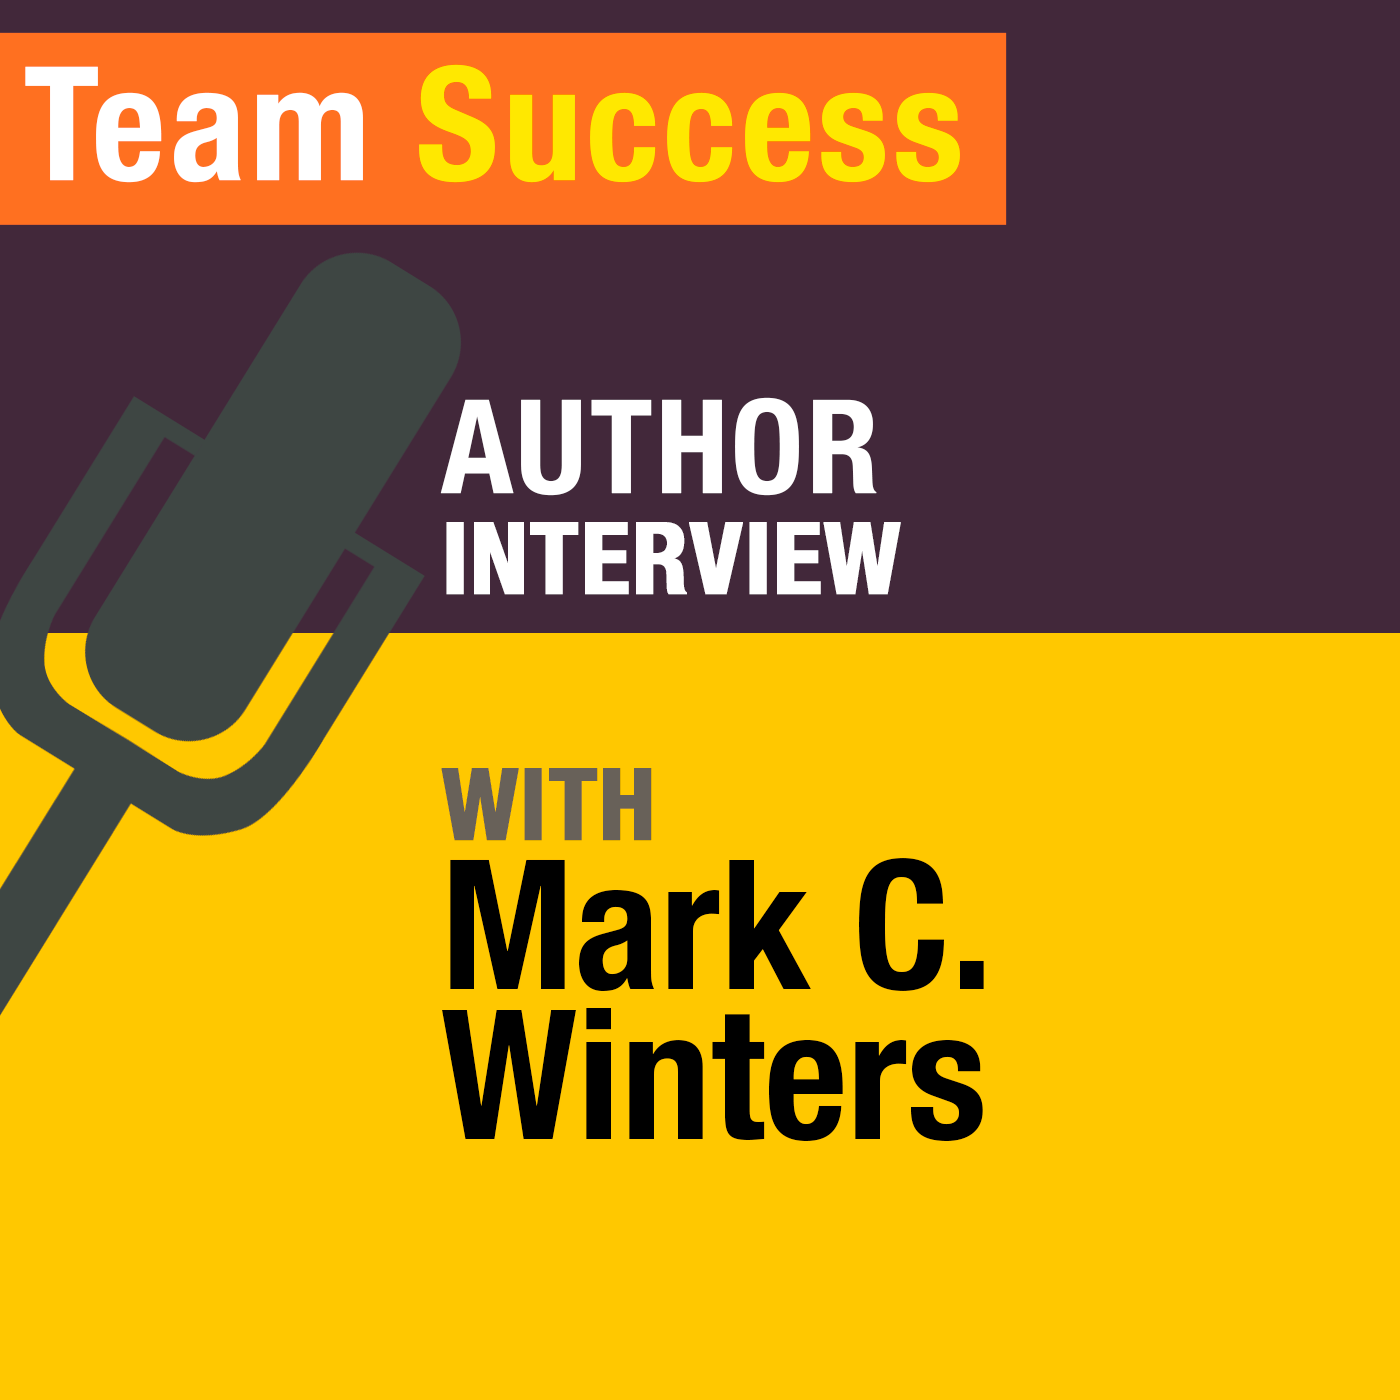 An Interview With Mark C. Winters - Team Success Podcast